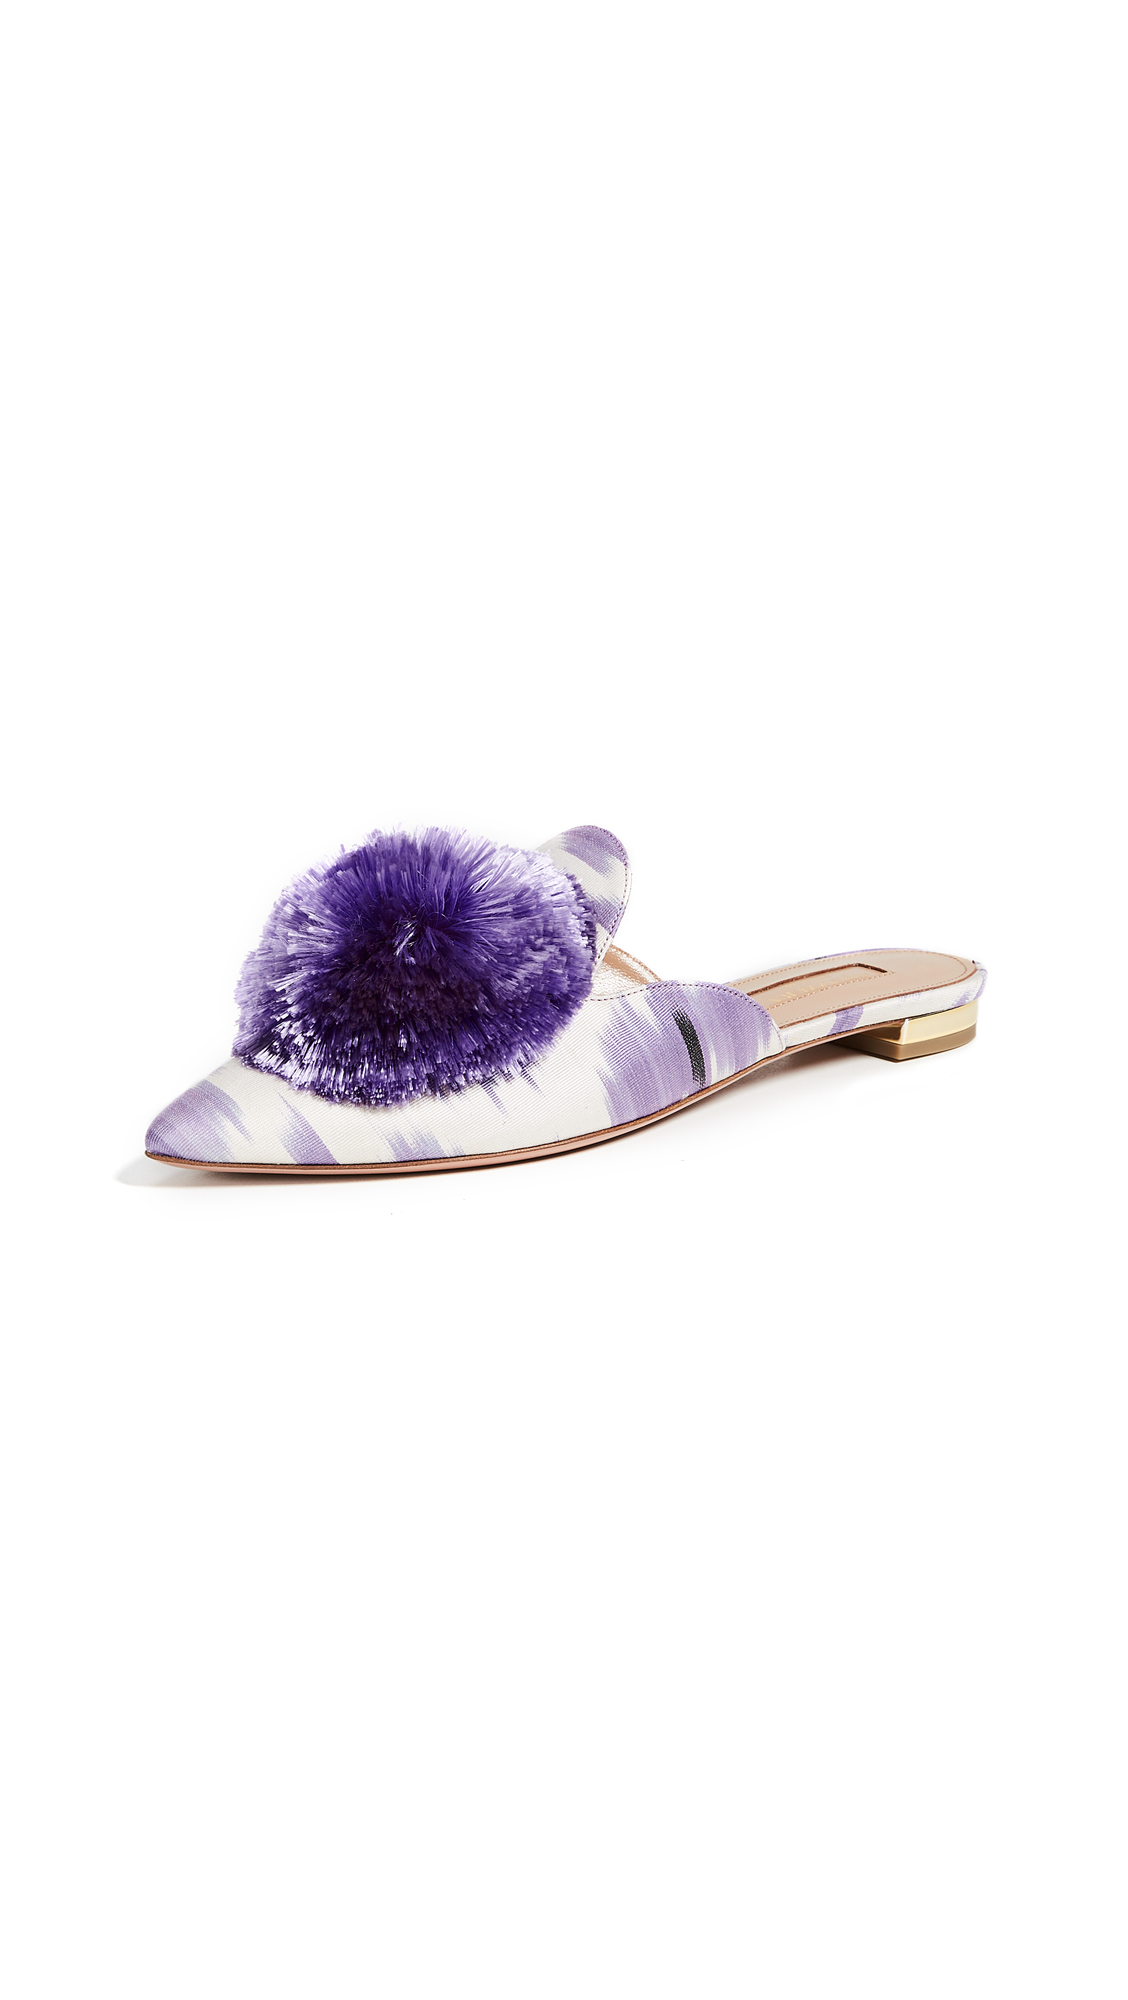 Aquazzura Powder Puff Flats - Amethyst